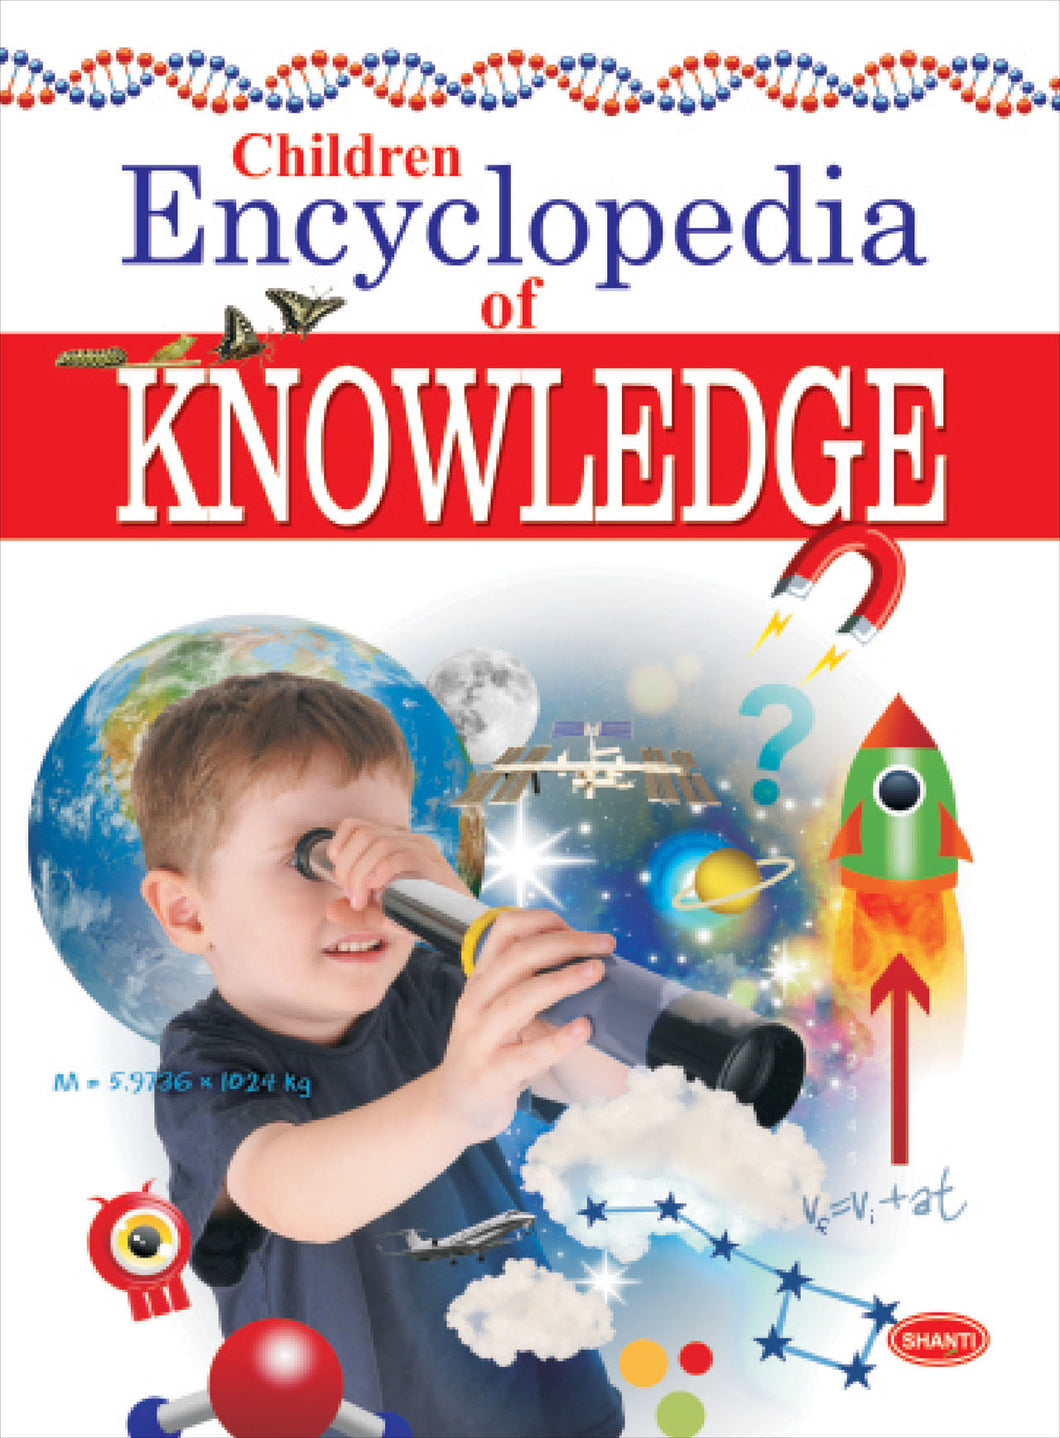 encyclopedia for kids-Children Encyclopedia of Knowledge_Red